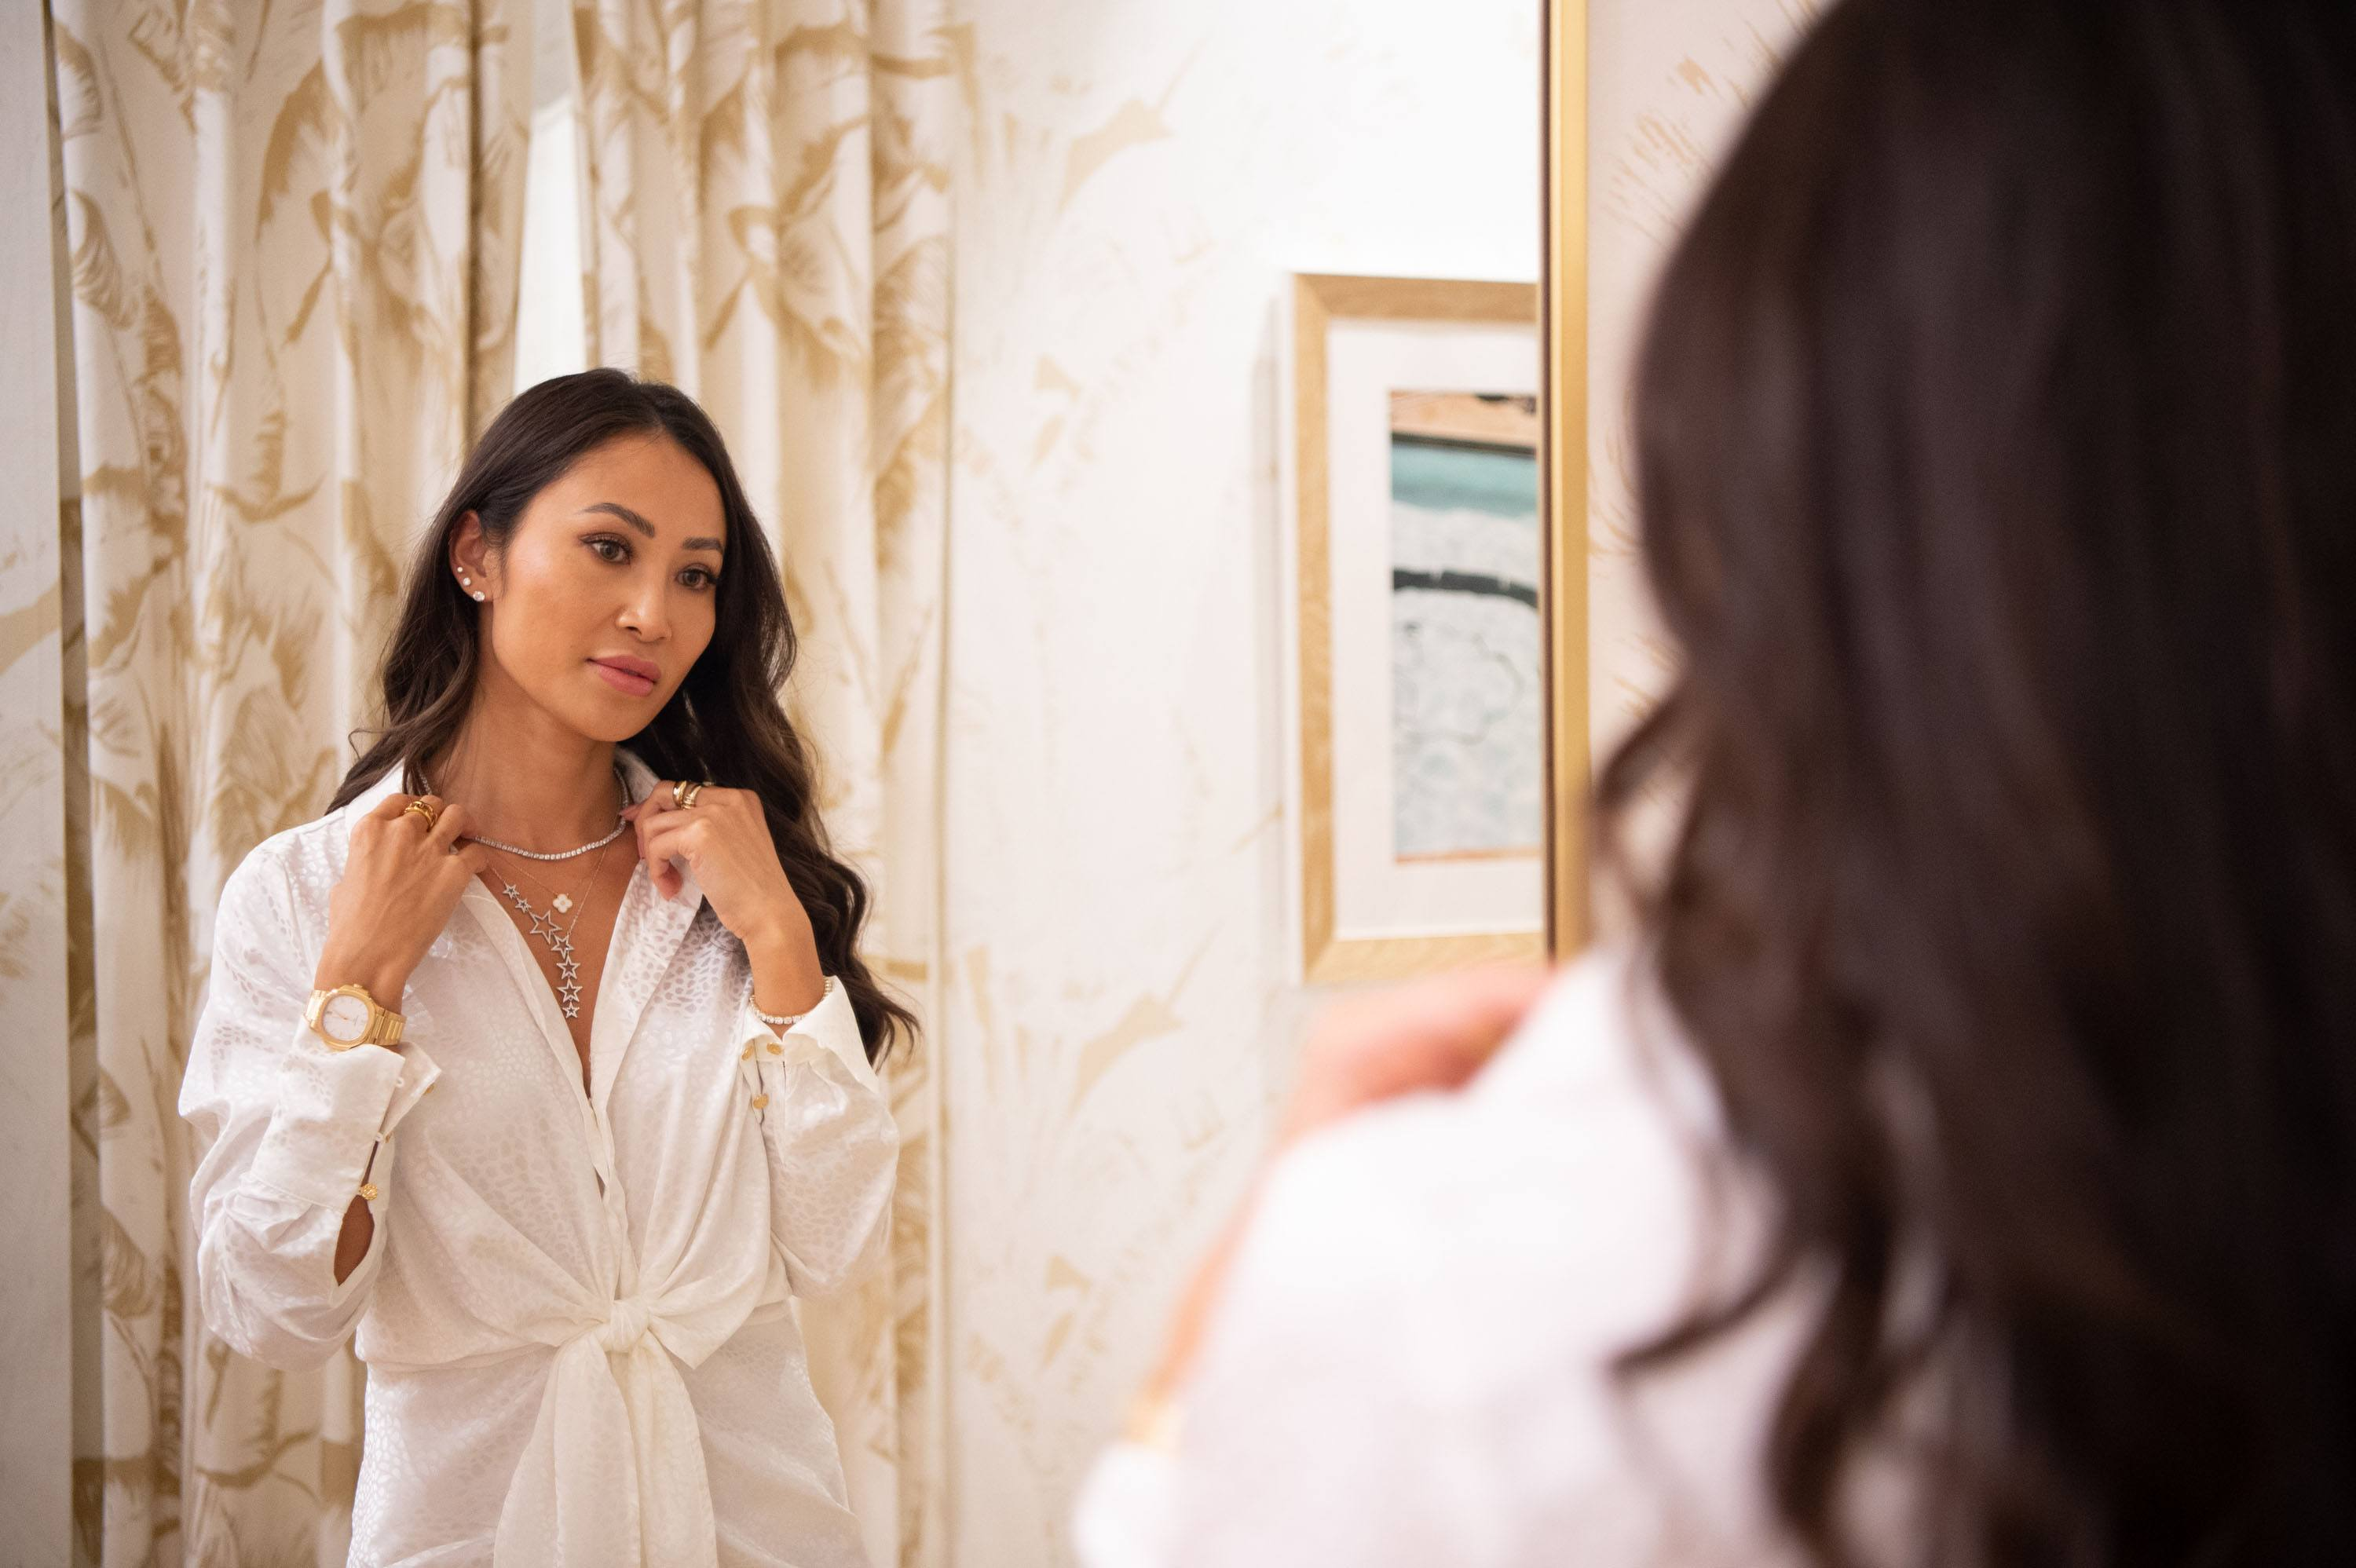 Woman poses in front of a mirror while adjusting her necklace